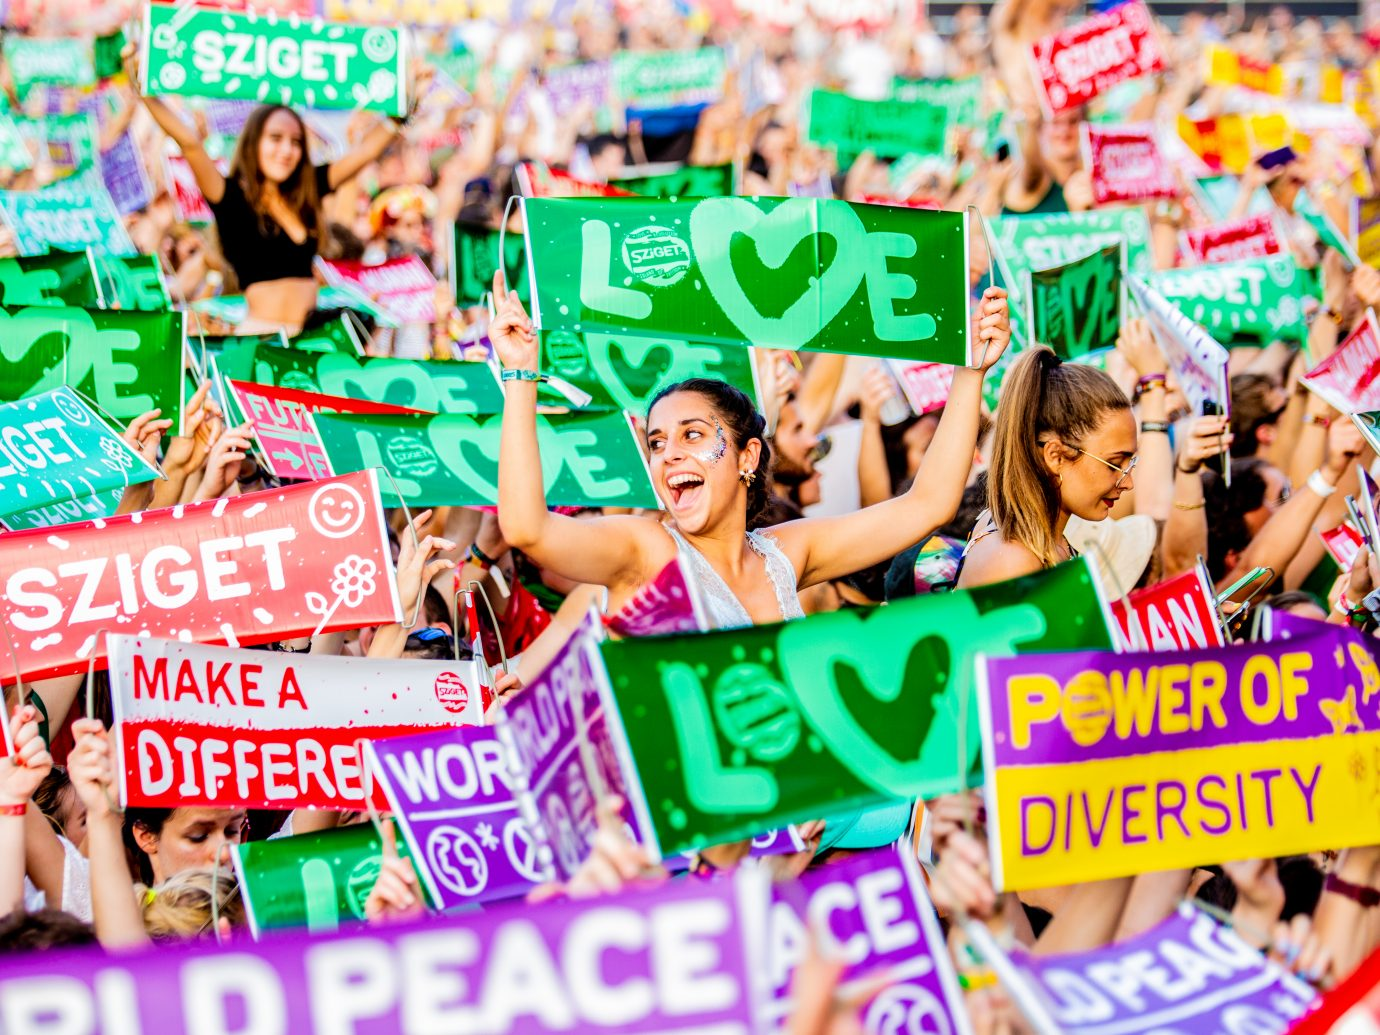 happy people in a crowd at a festival holding signs of peace and positivity